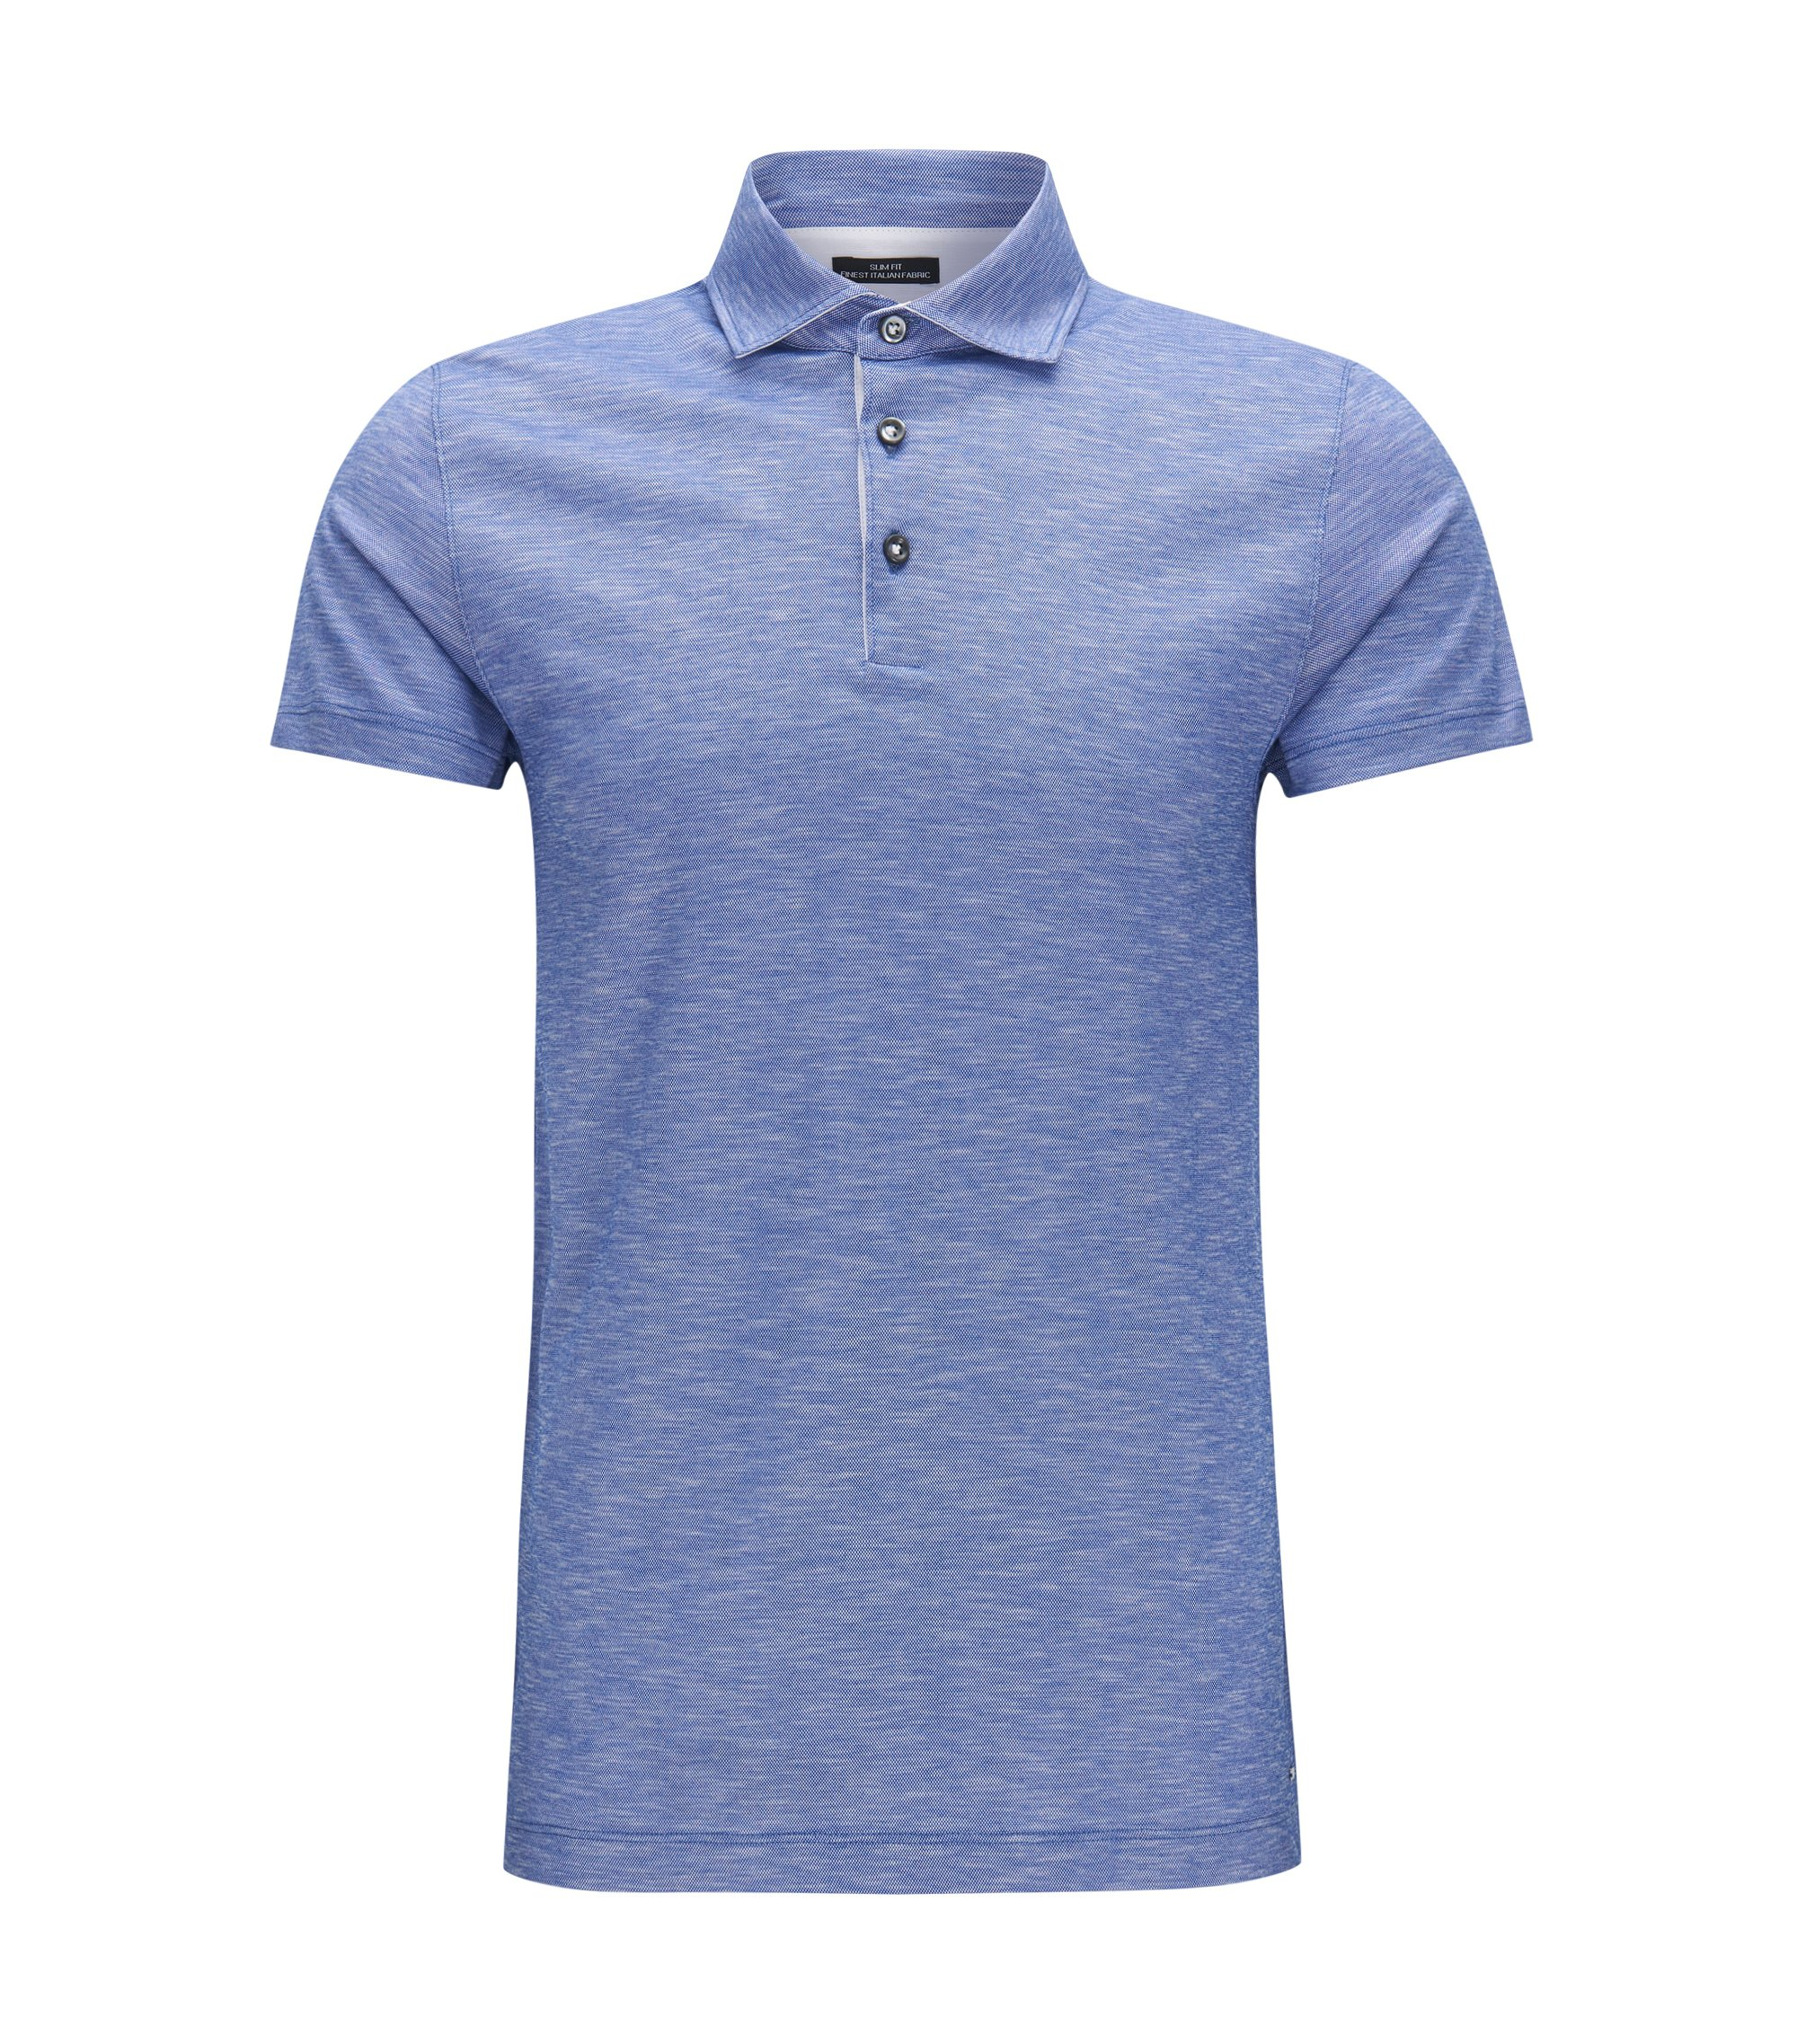 Italian Cotton Polo Shirt, Slim Fit | T-Pryde, Open Blue